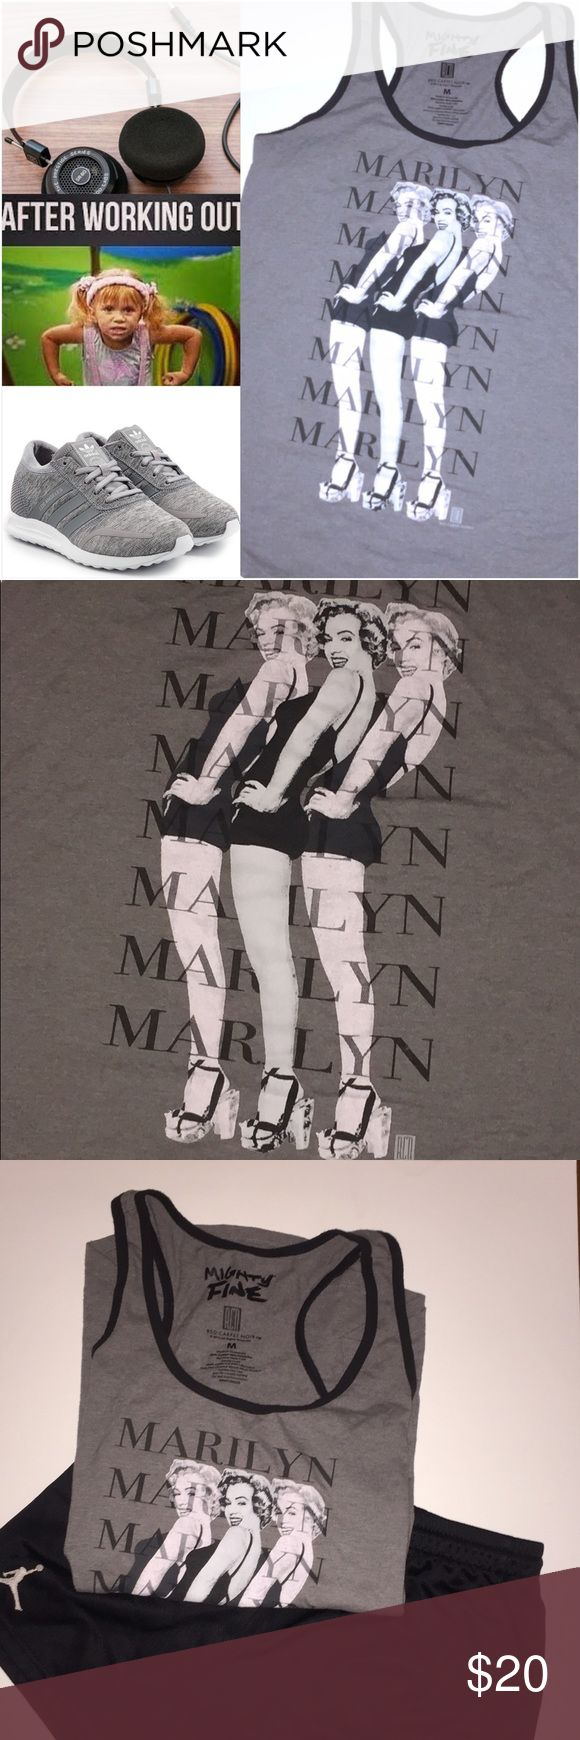 Marilyn Monroe Muscle Tank Gray Marilyn Monroe Sleeveless muscle tank. Gray with black trim and black and white print. Fashionable and will look great with any outfit. Tackle your New Year's Resolutions while staying fashionable! New condition. Super cute and trendy. ✨✨✨ Bundle and save! ✨✨✨ Tops Muscle Tees